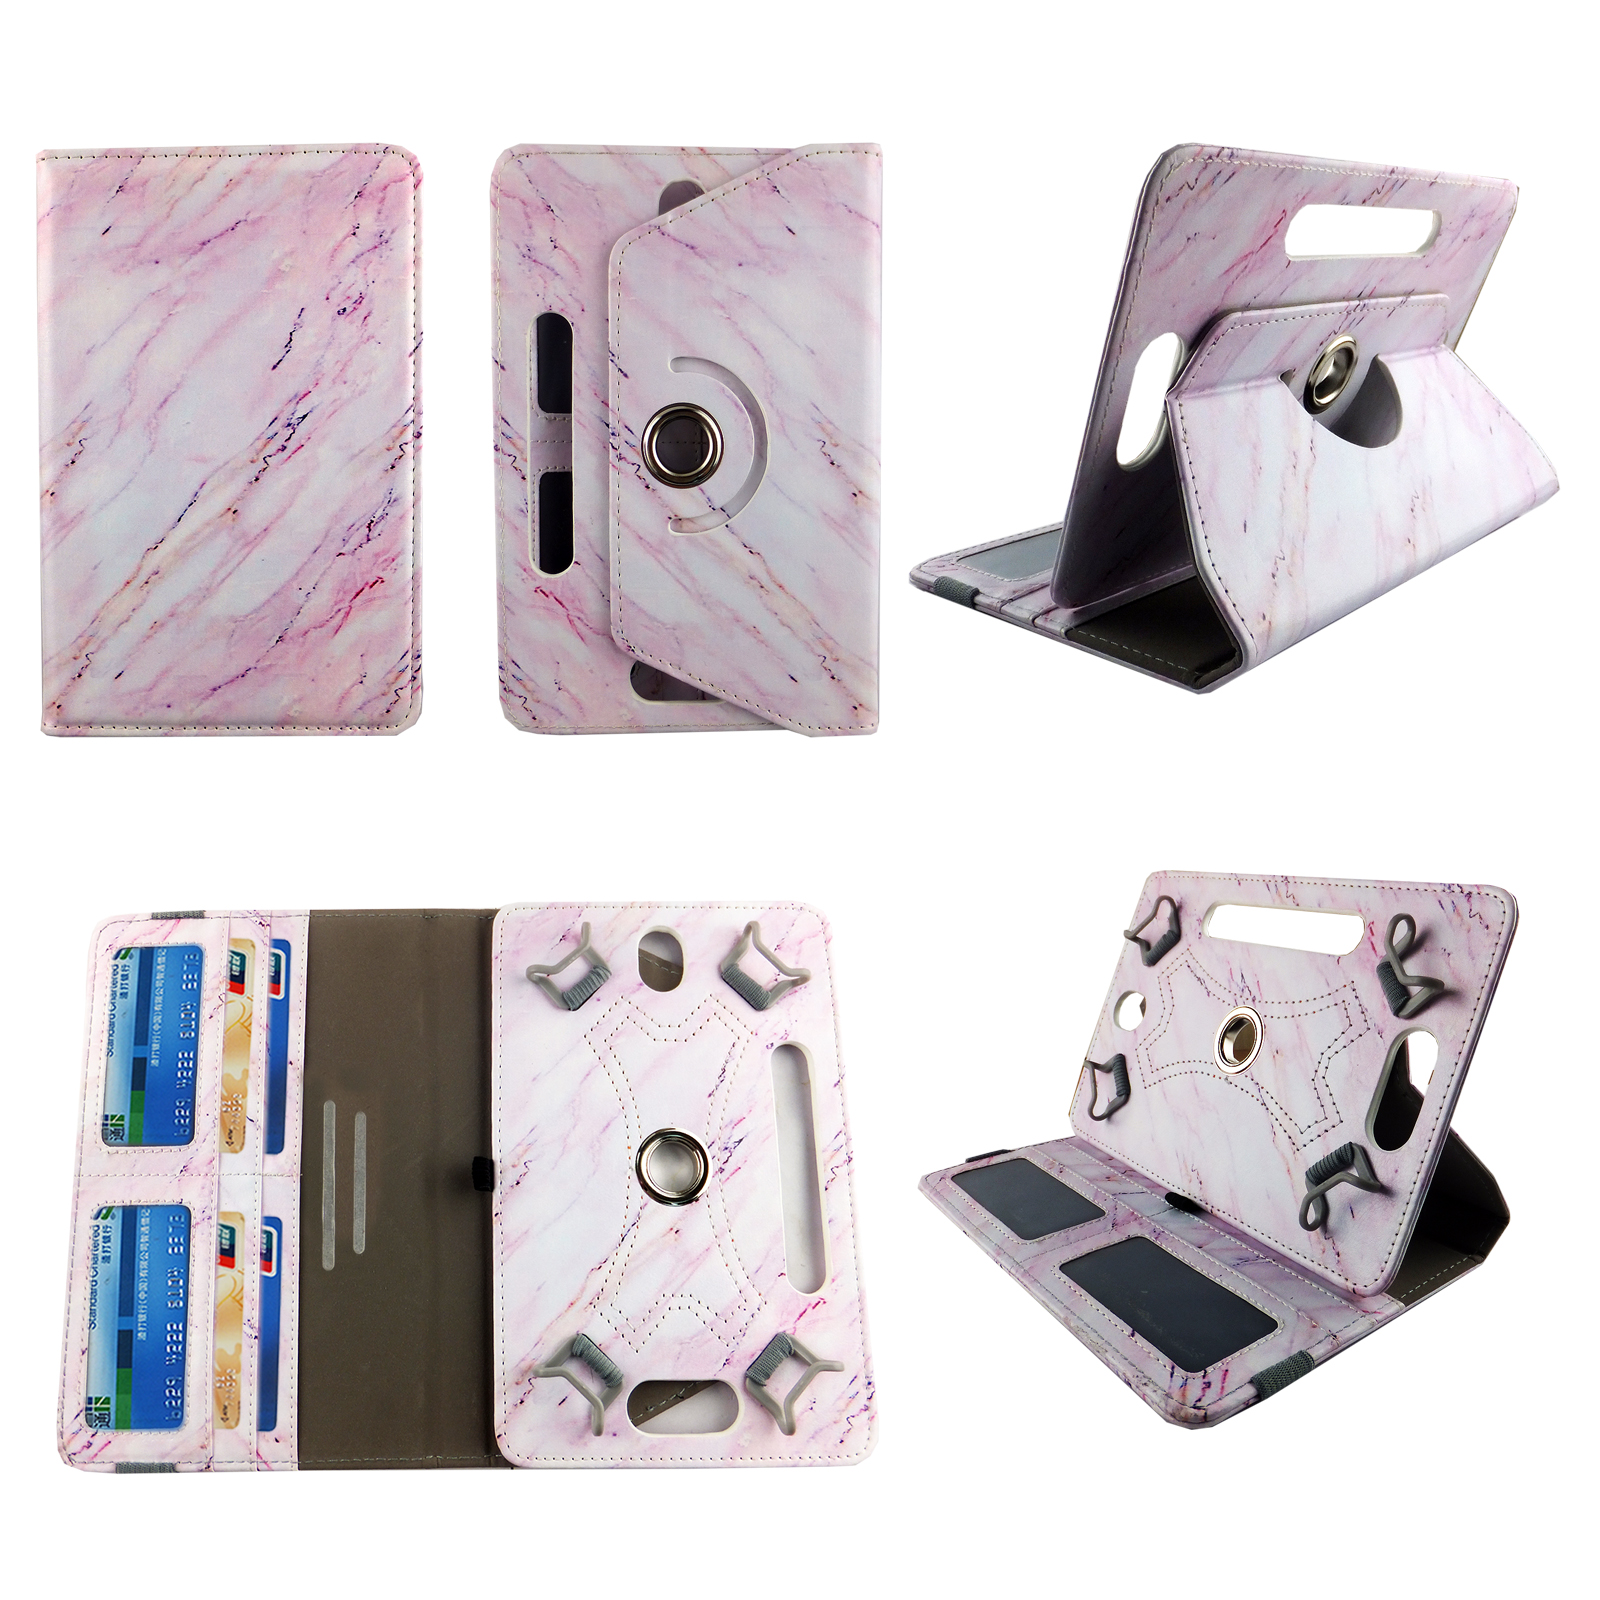 "Pink Marble tablet case 7 inch for LG G Pad LTE 7"" 7inch  android tablet cases 360 rotating slim folio stand protector pu leather cover travel e-reader cash slots"